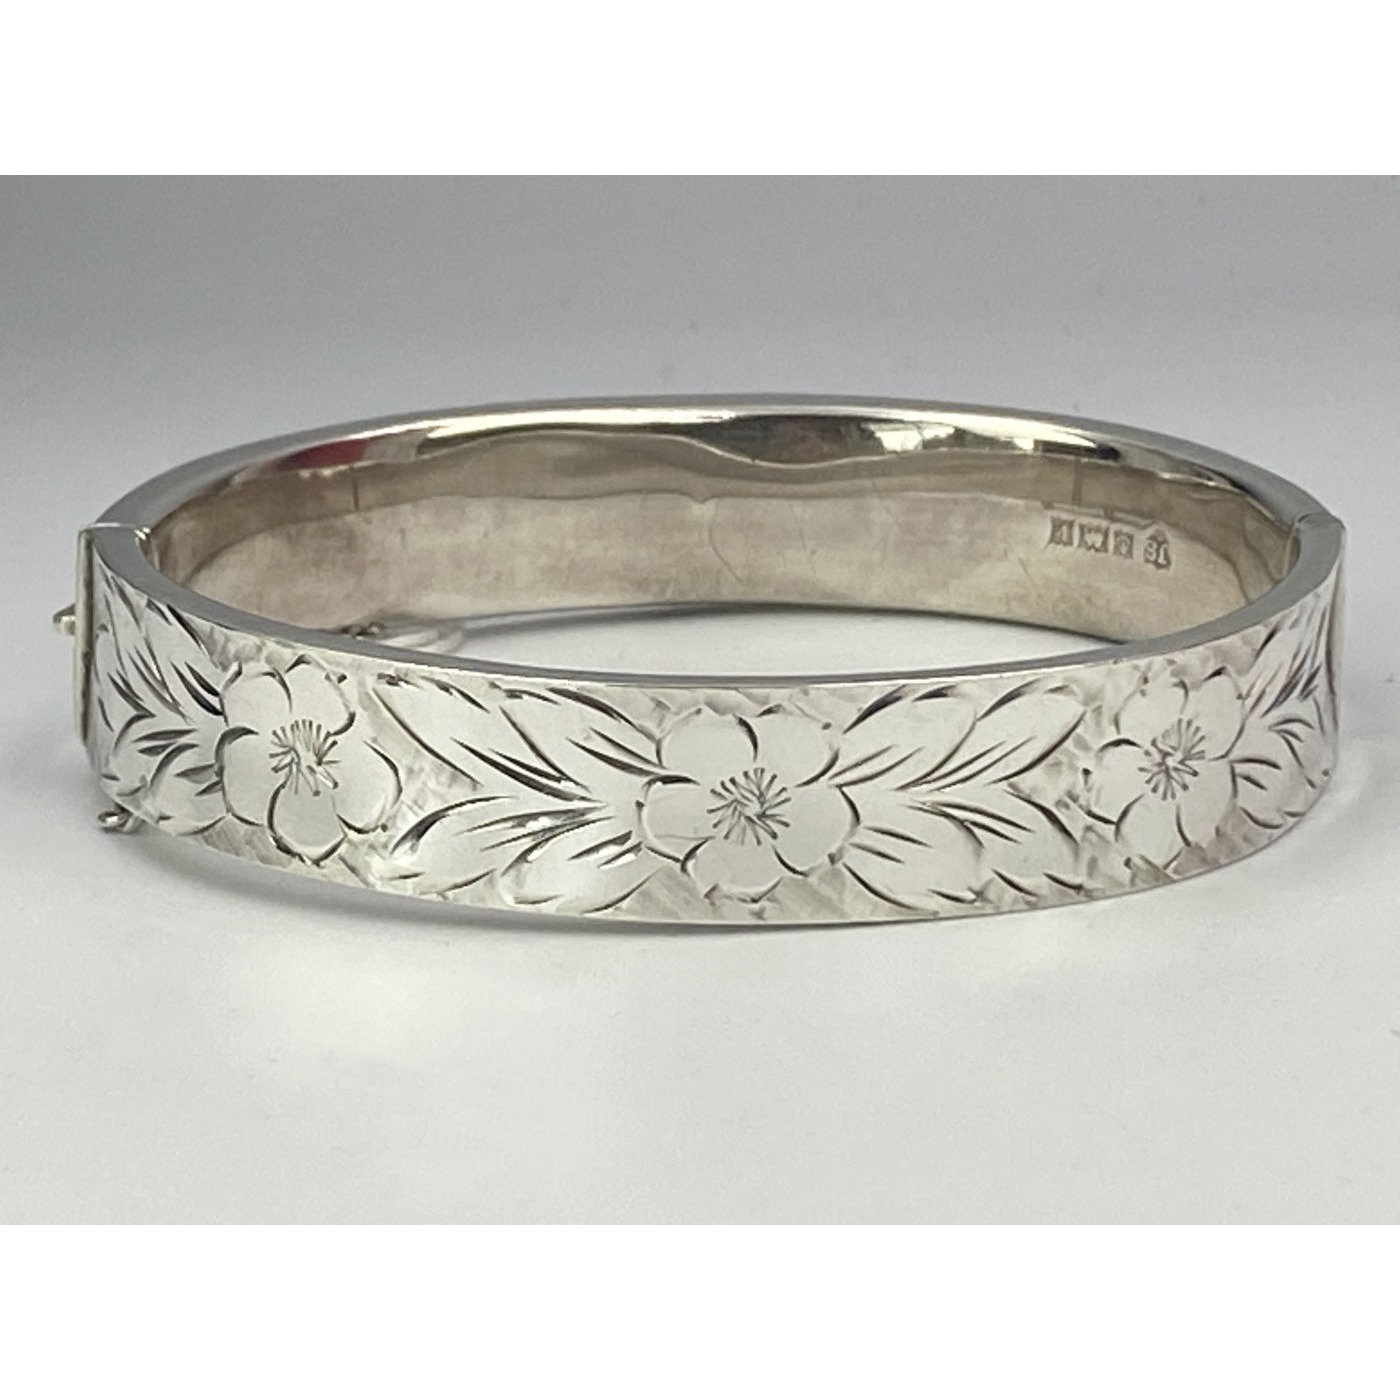 Engraving All-The-Way-Around Floral English Silver Bangle